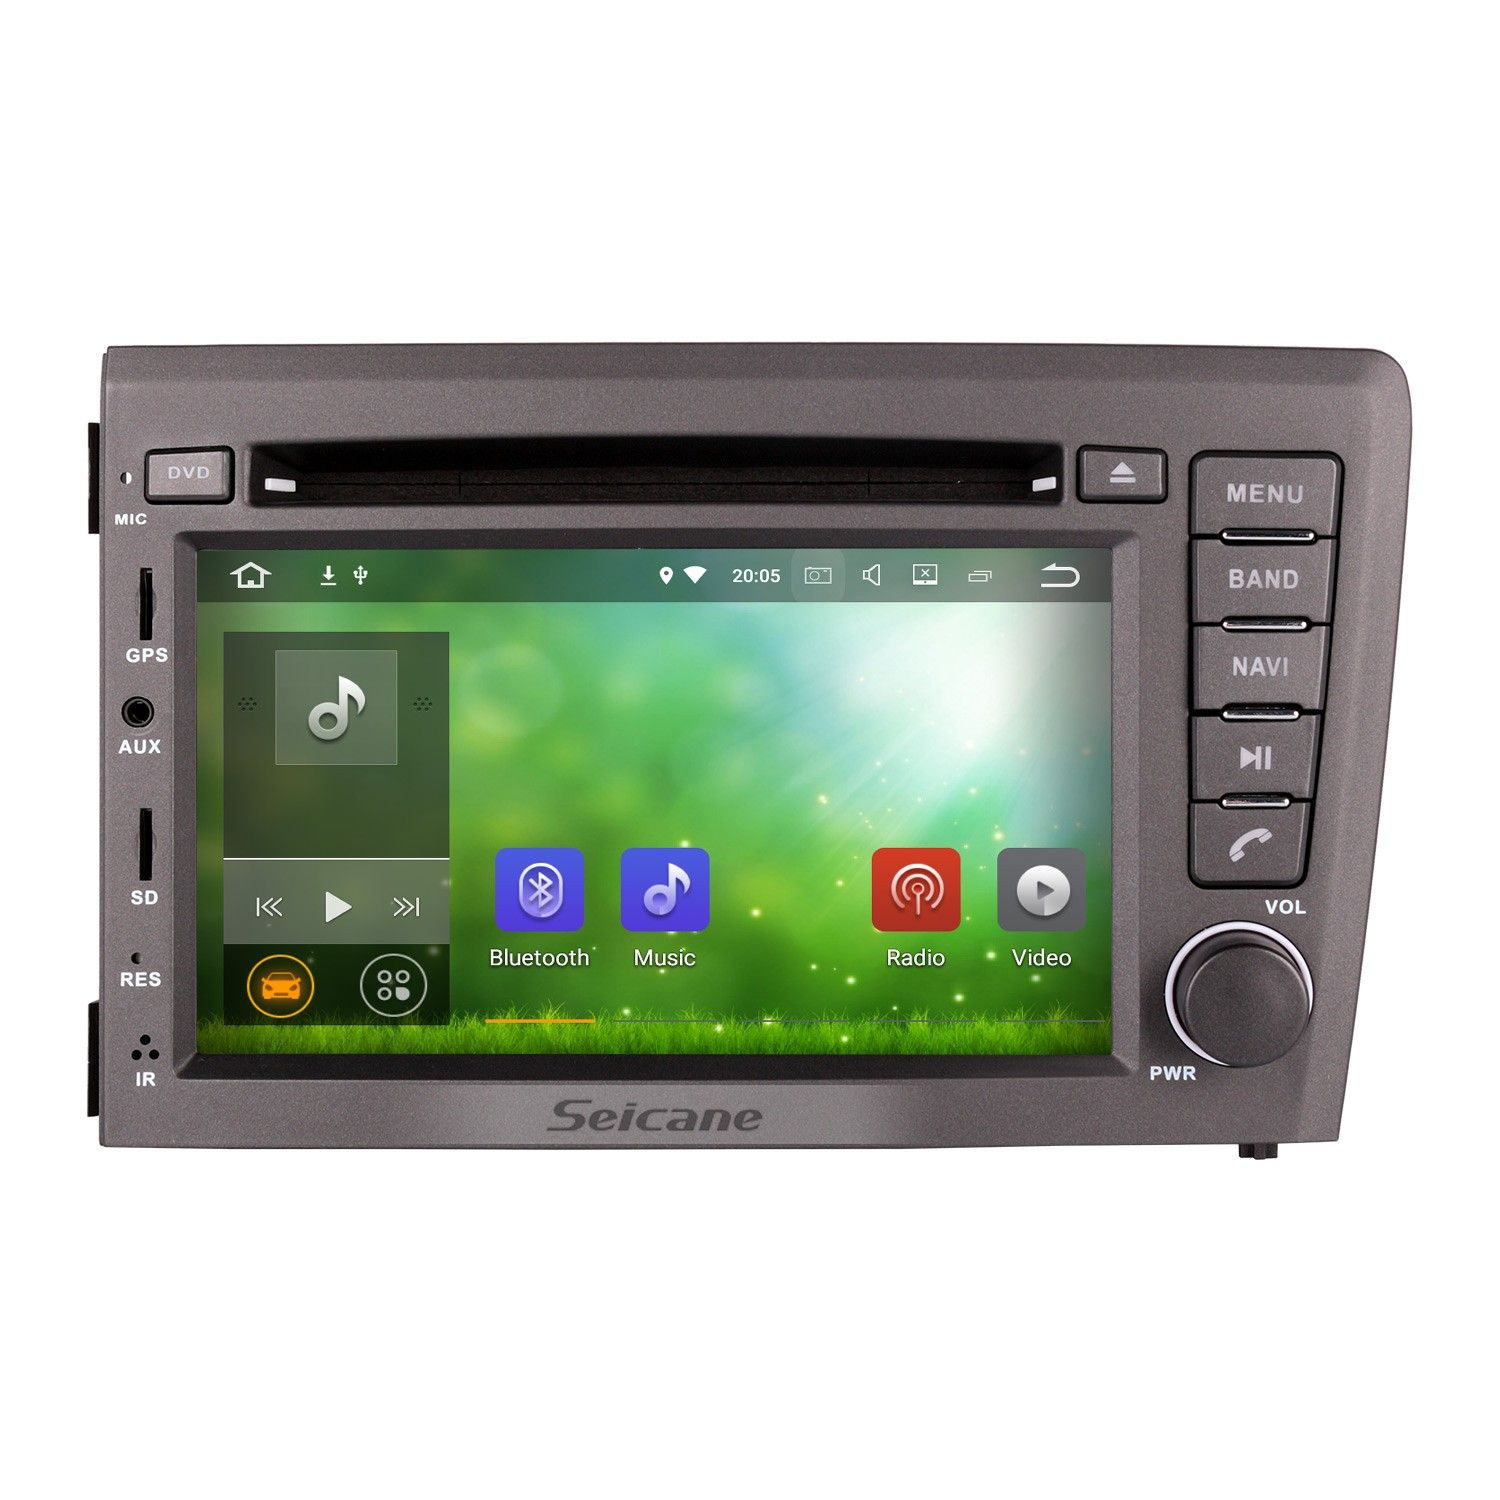 small resolution of seicane 2001 2004 volvo s60 v70 android 7 1 hd touch screen dvd player radio bluetooth